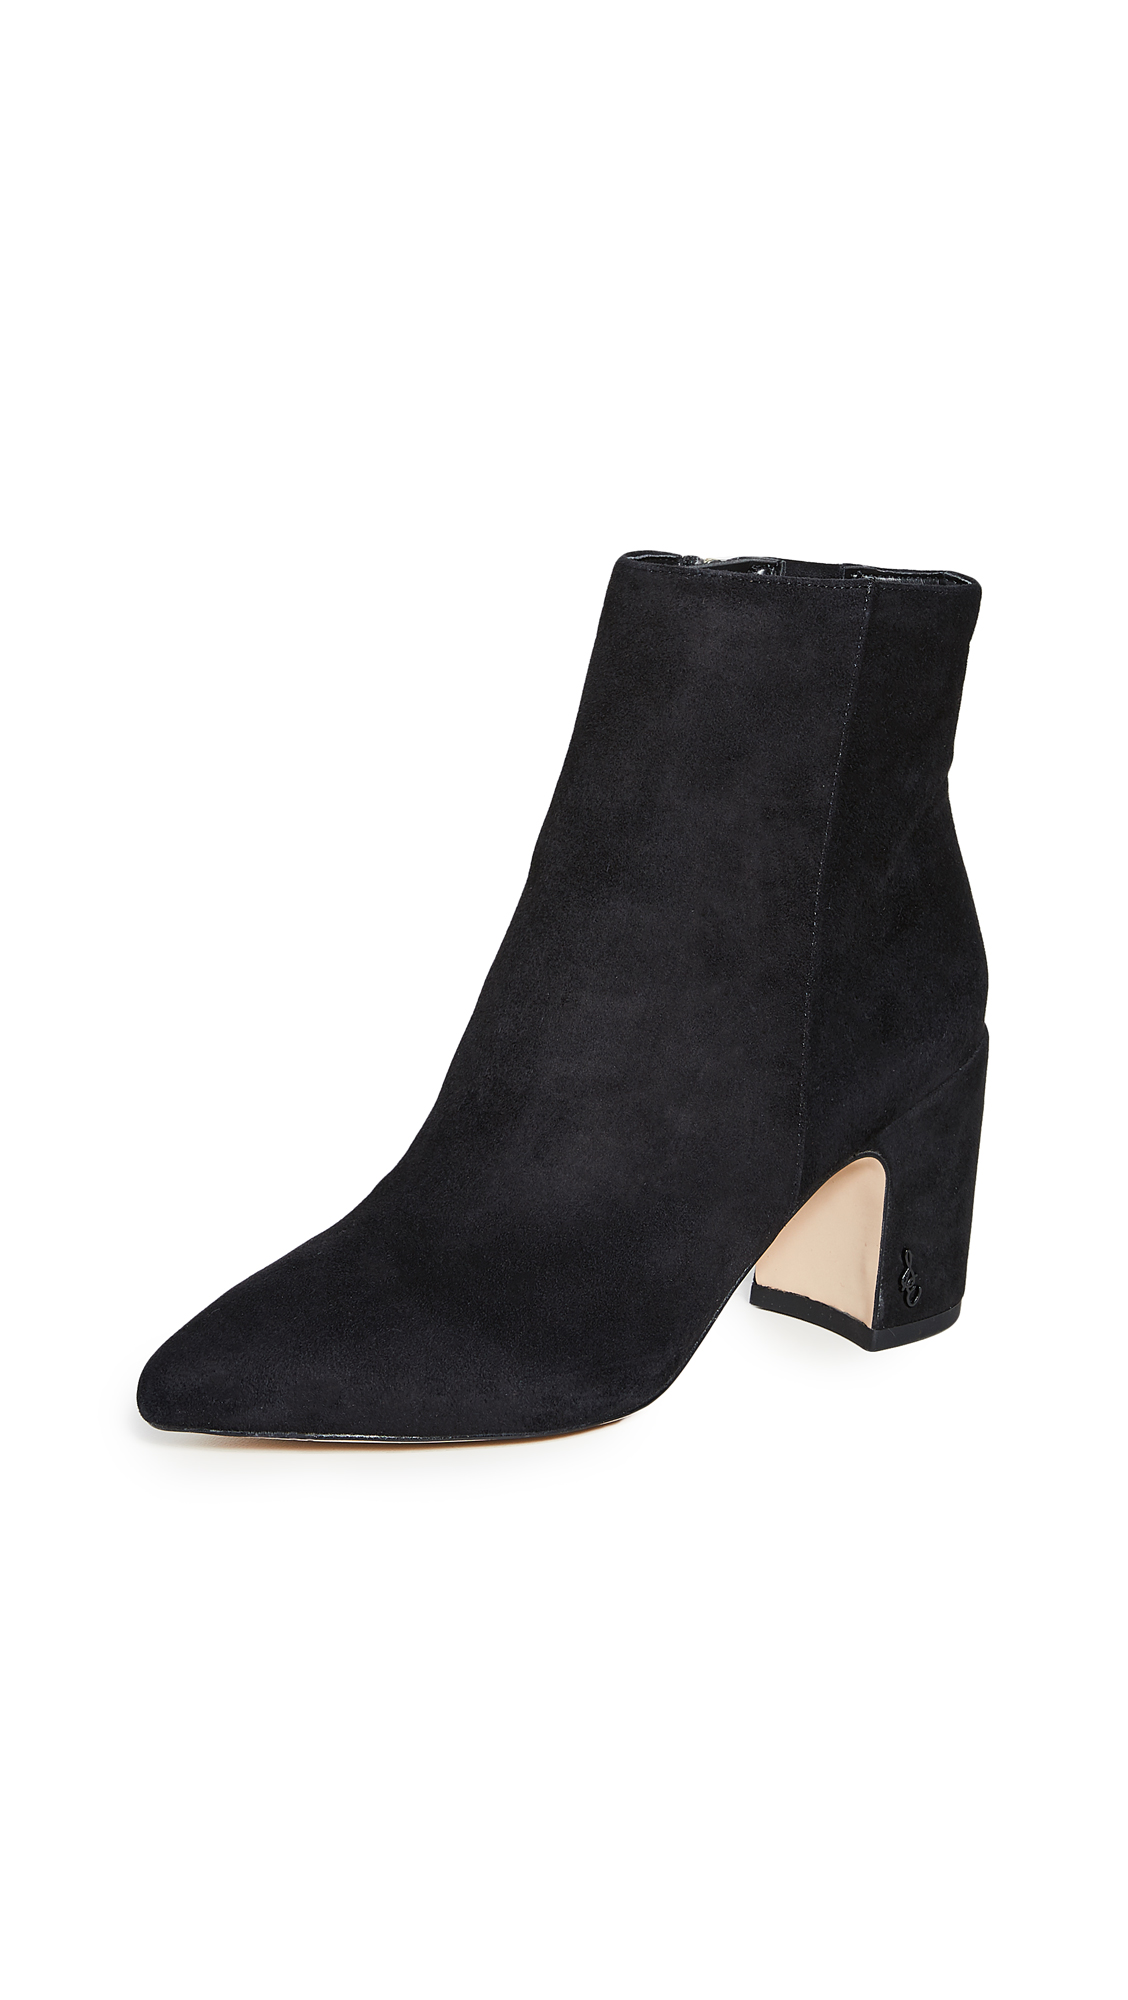 Sam Edelman Hilty Booties - 40% Off Sale